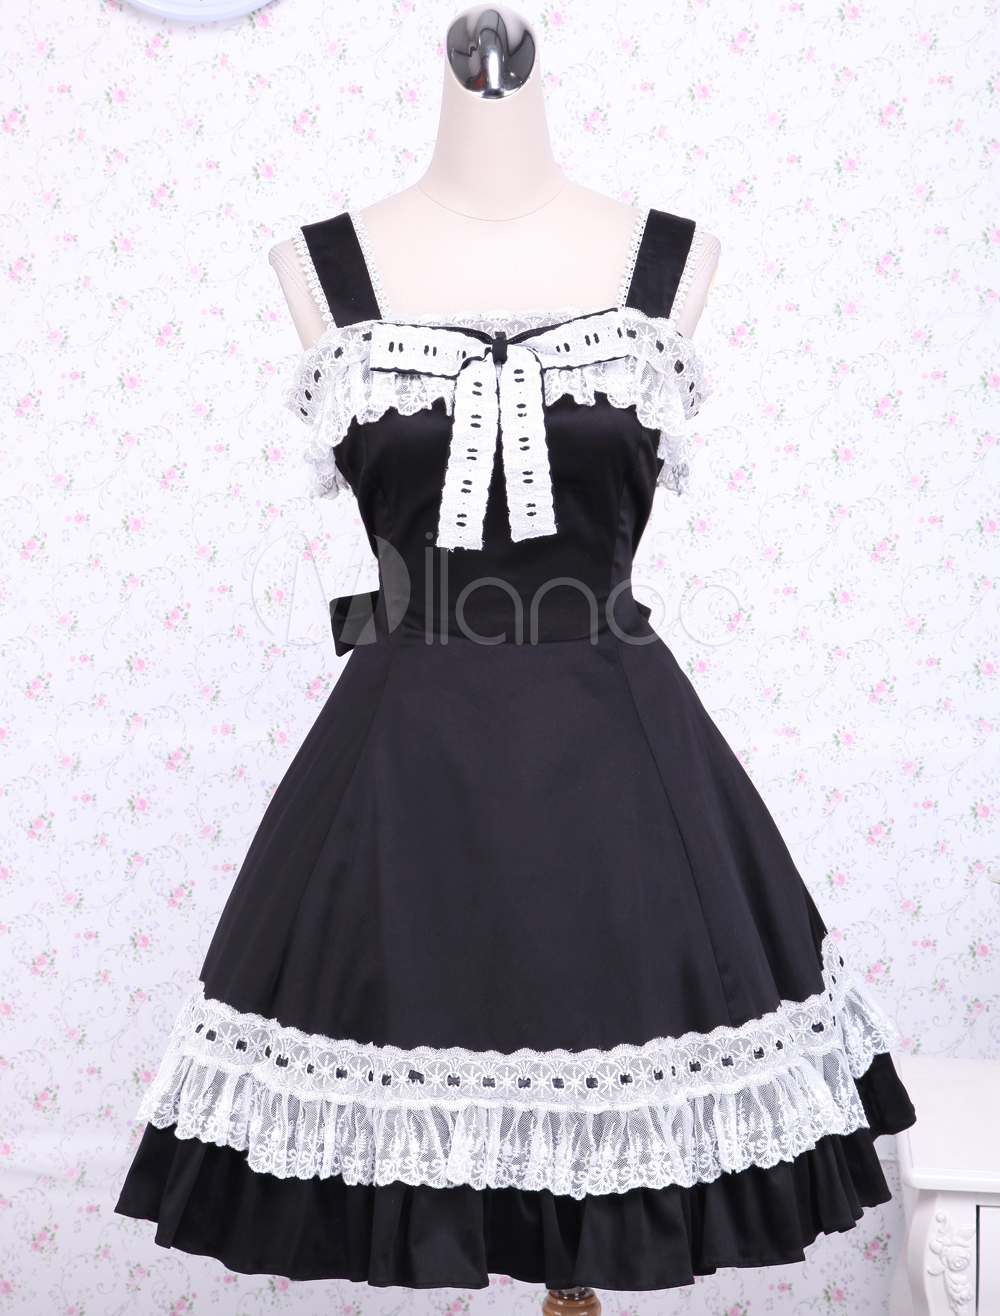 Buy Cotton Black Loltia Jumper Skirt White Lace Trim Bow for $75.99 in Milanoo store